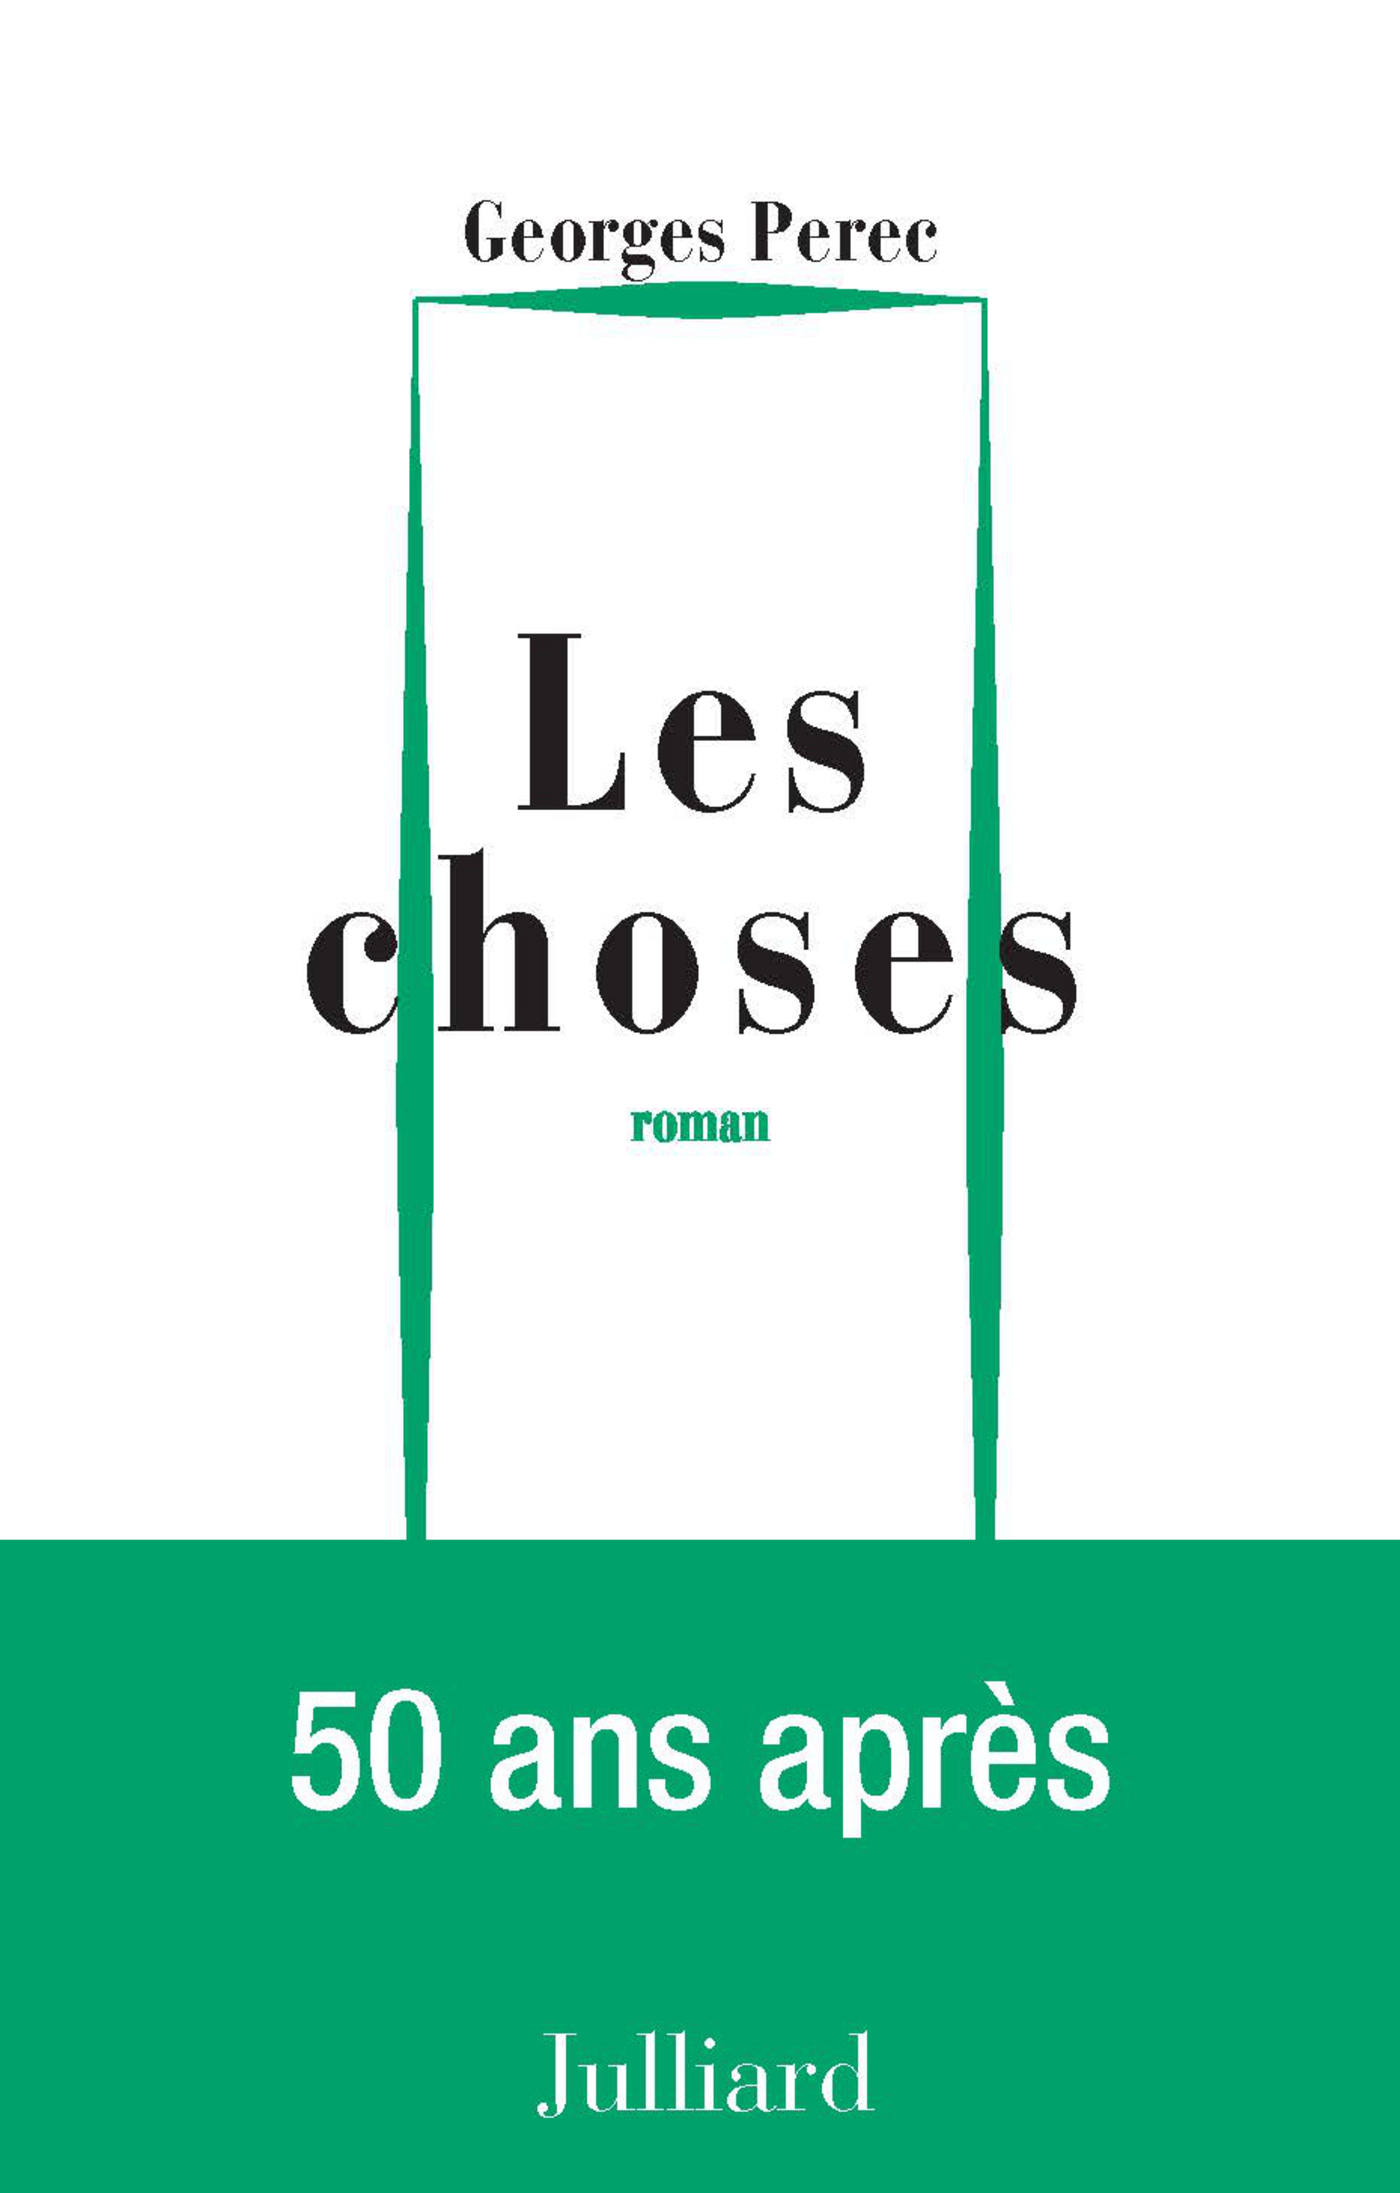 CHOSES -LES - Georges Perec